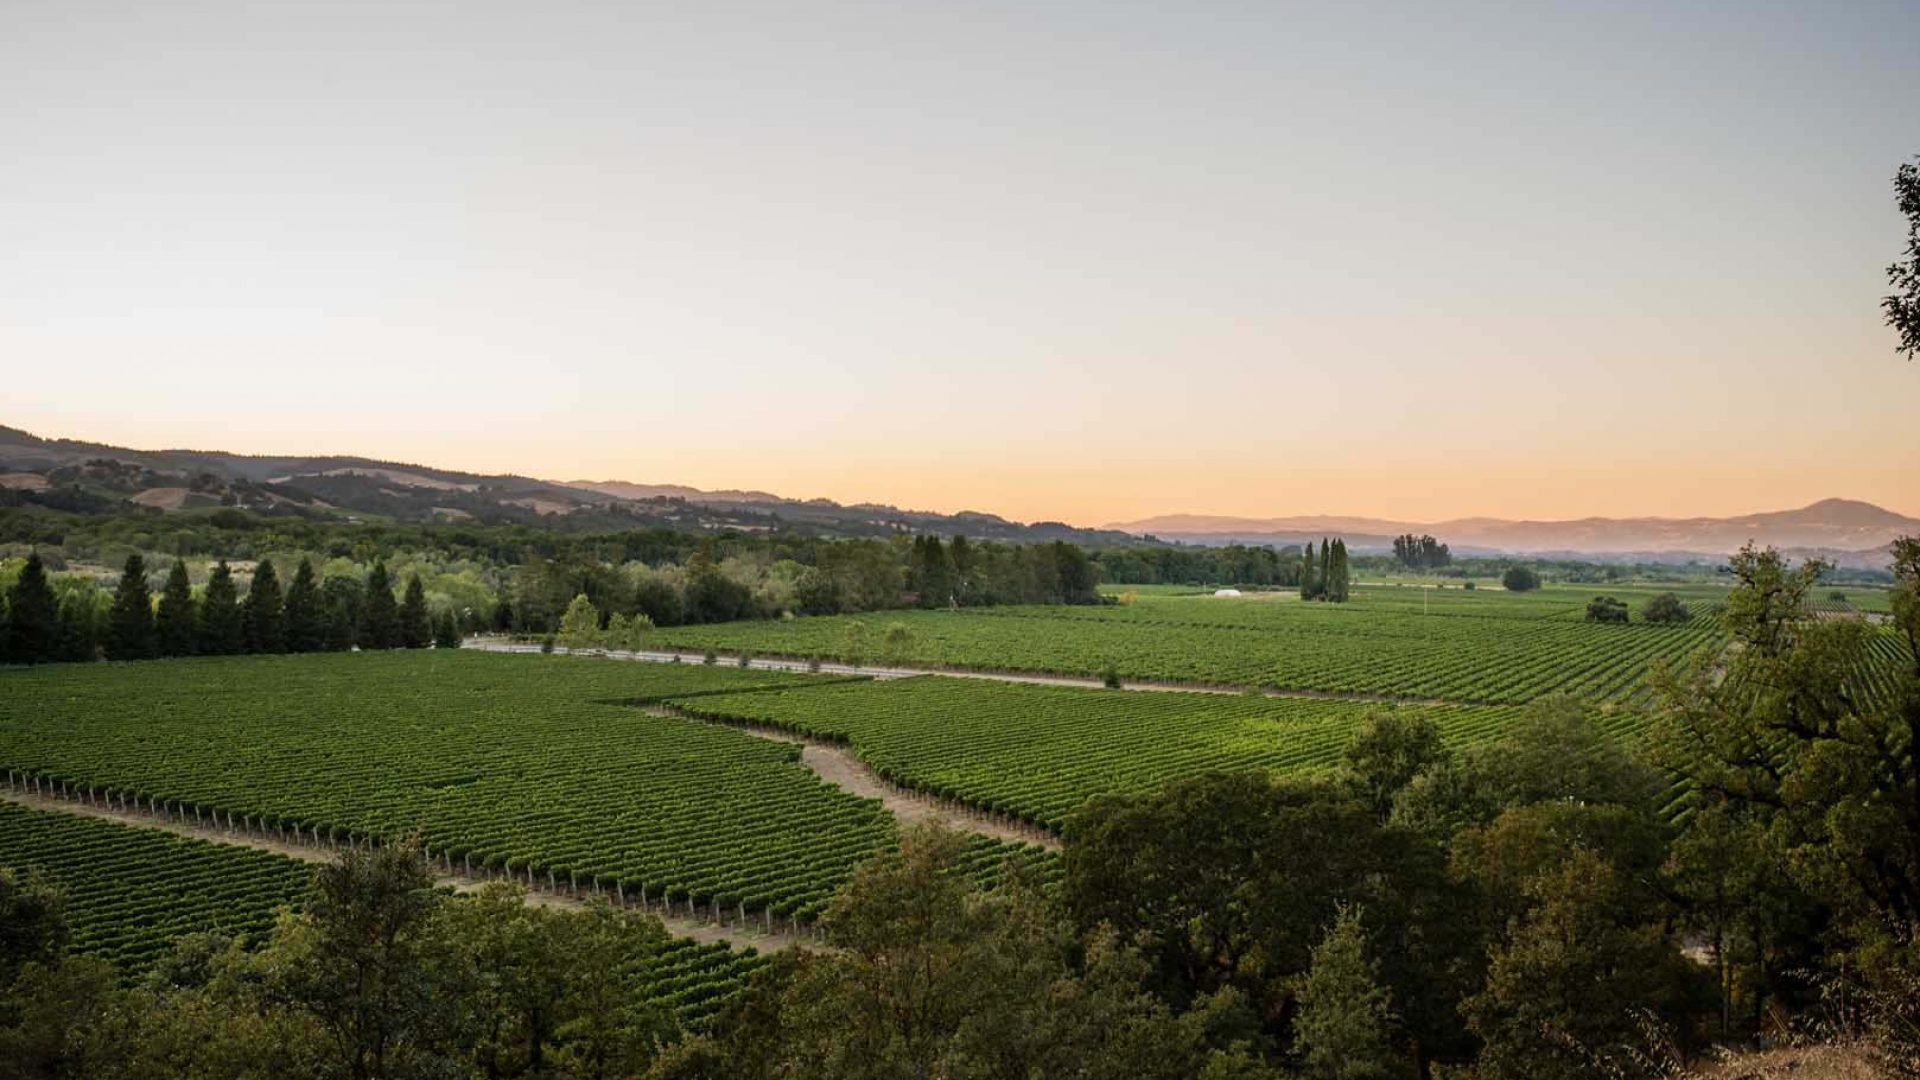 Sunset-Vineyard-Views